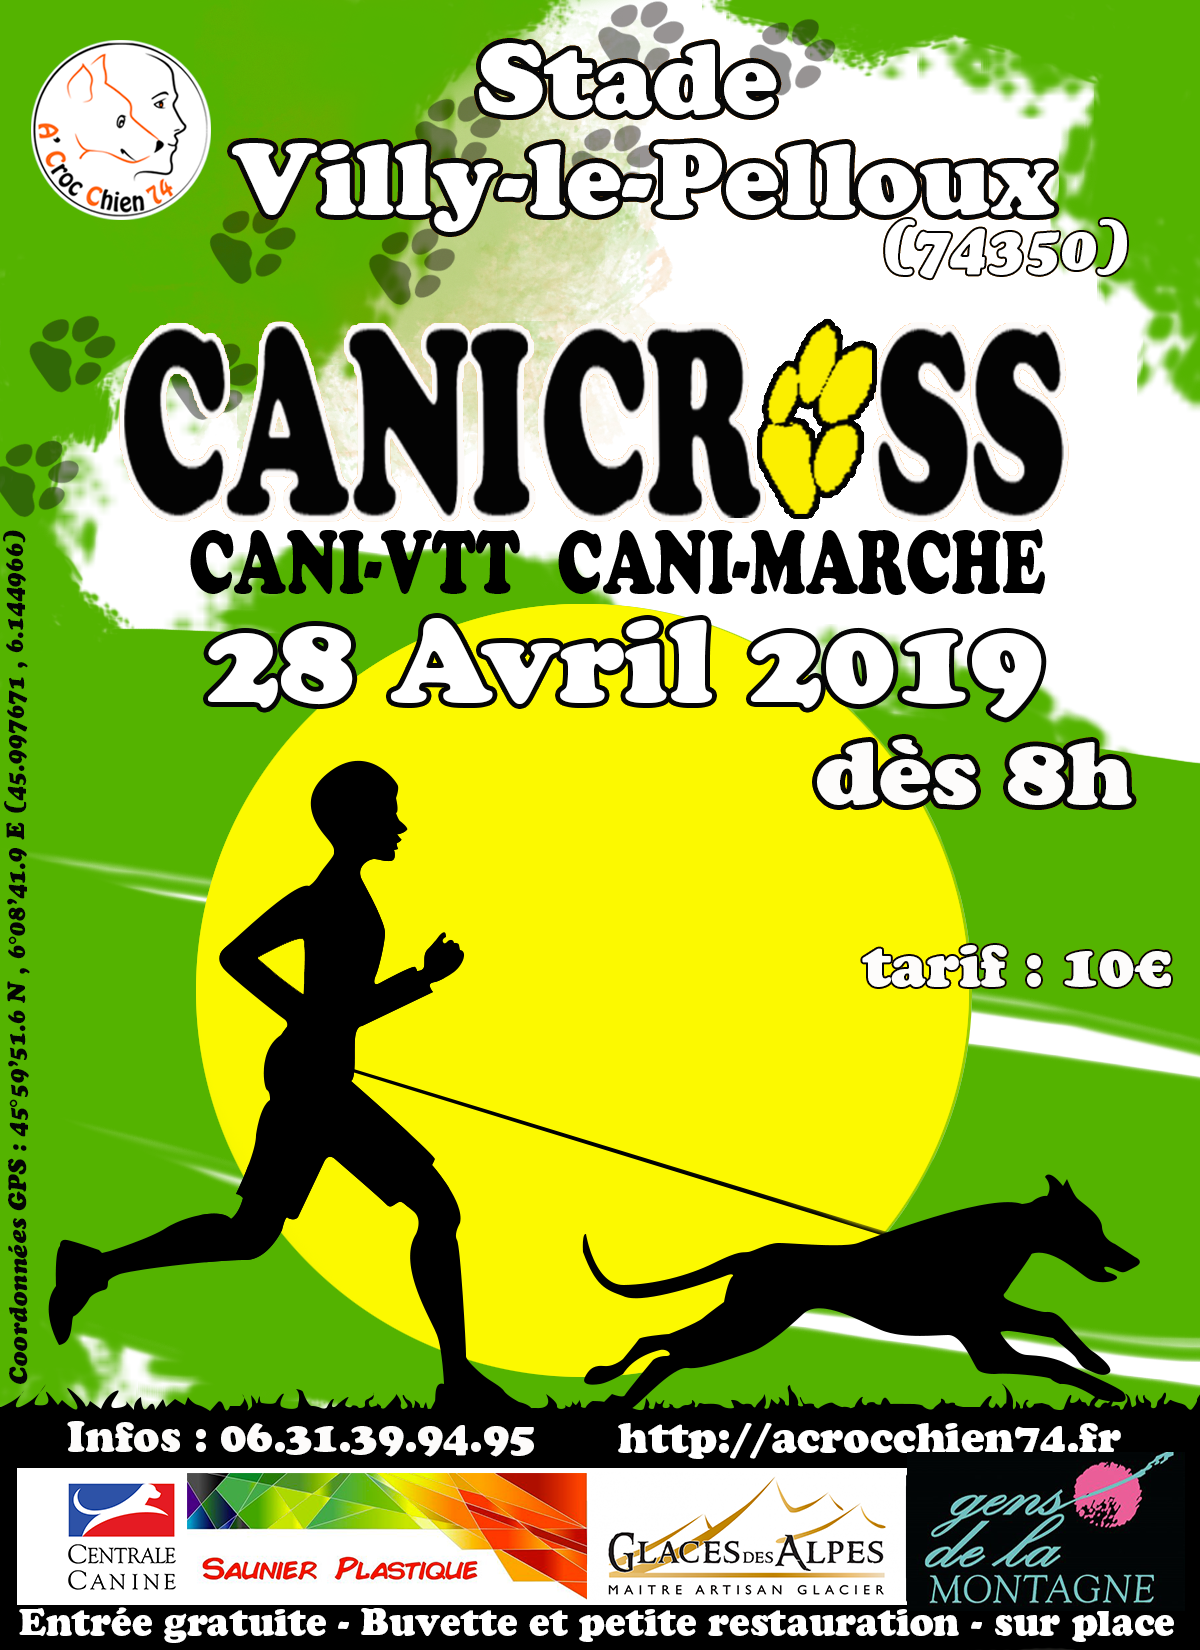 Calendrier Canicross.Concours Canicross Dimanche 28 Avril 2019 A Croc Chien 74